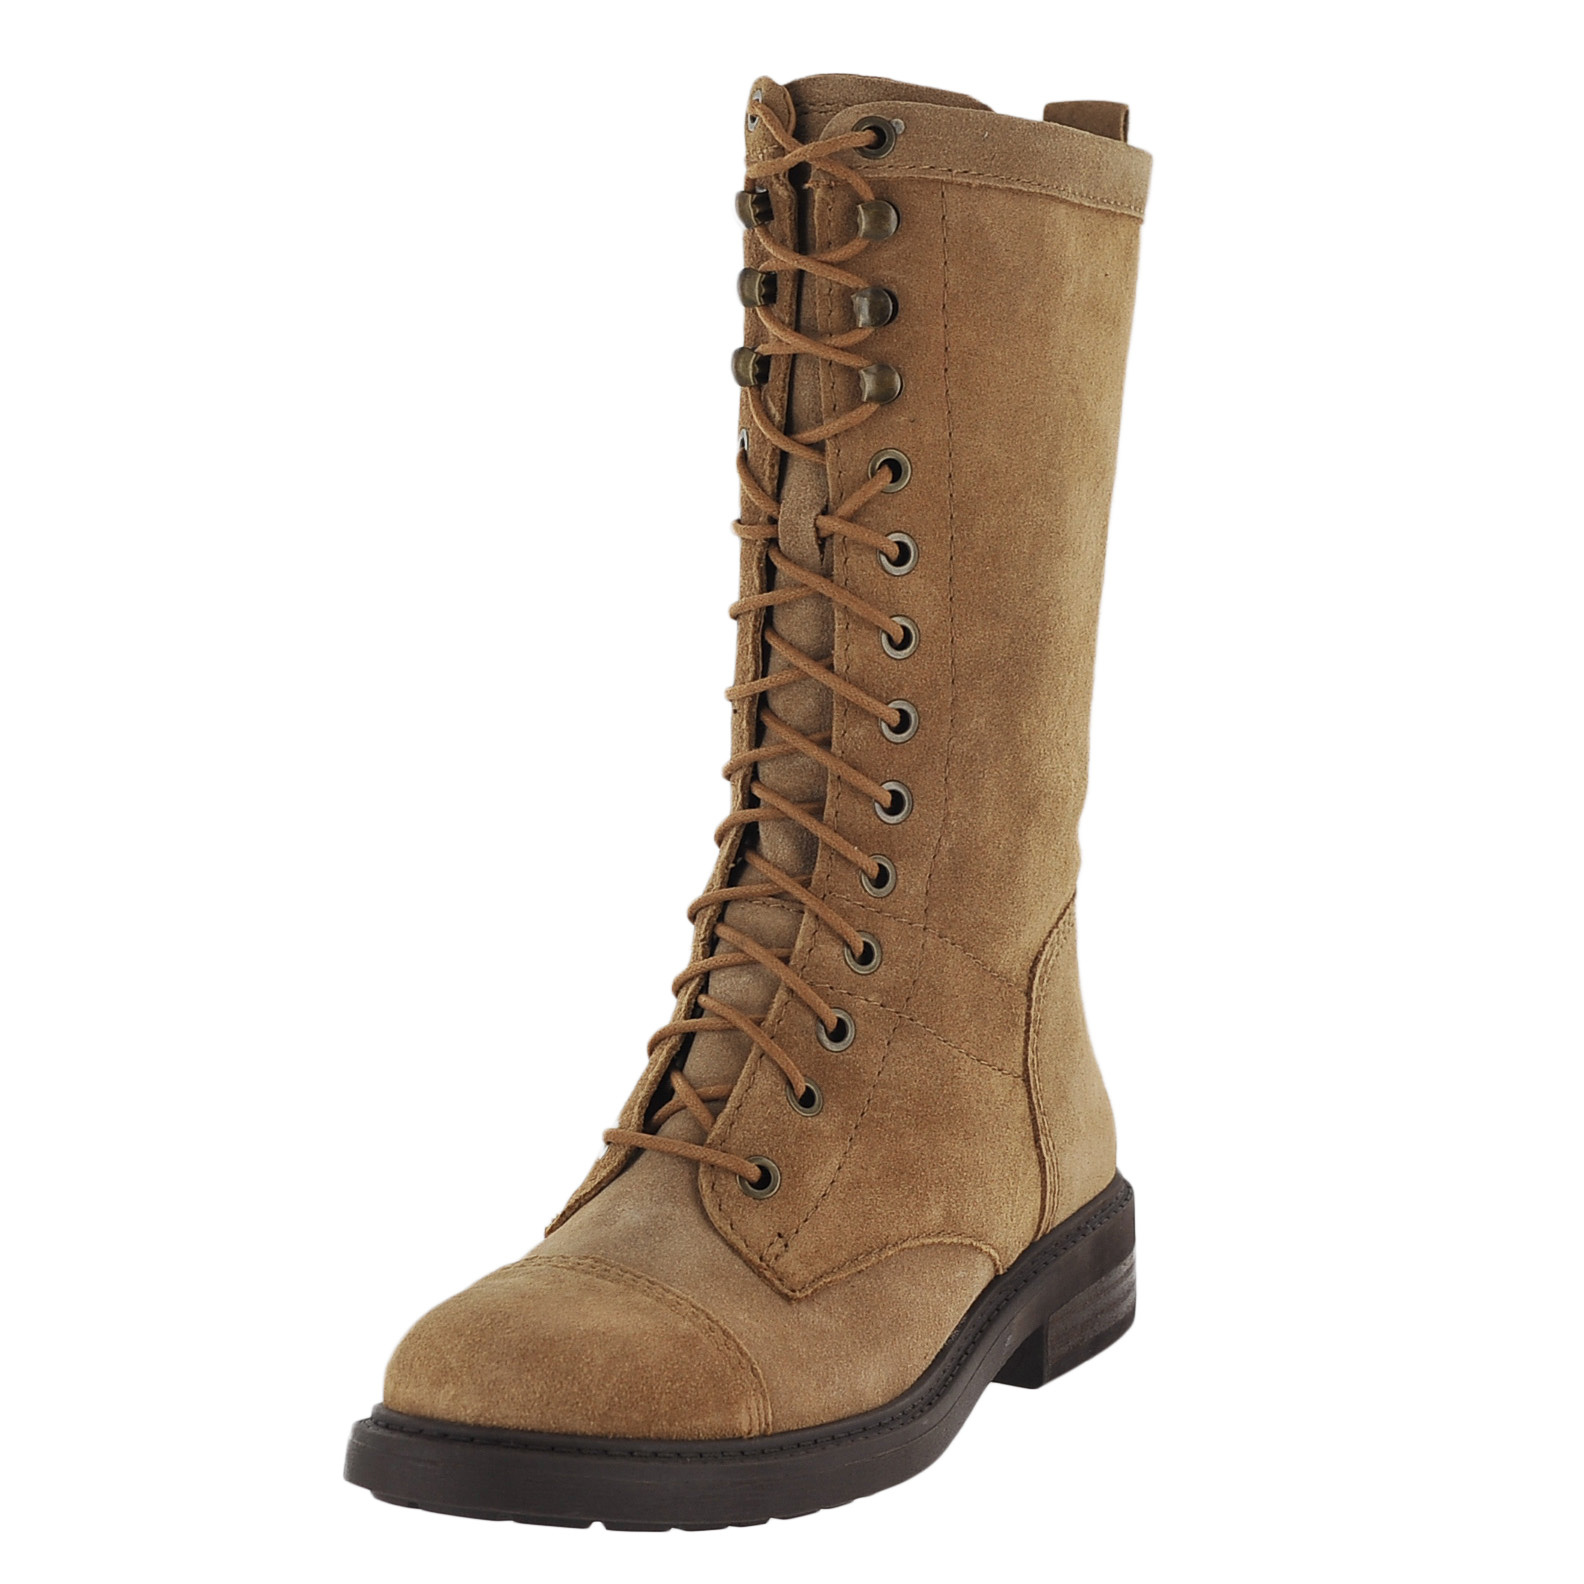 nine west gunner suede womens winter boot